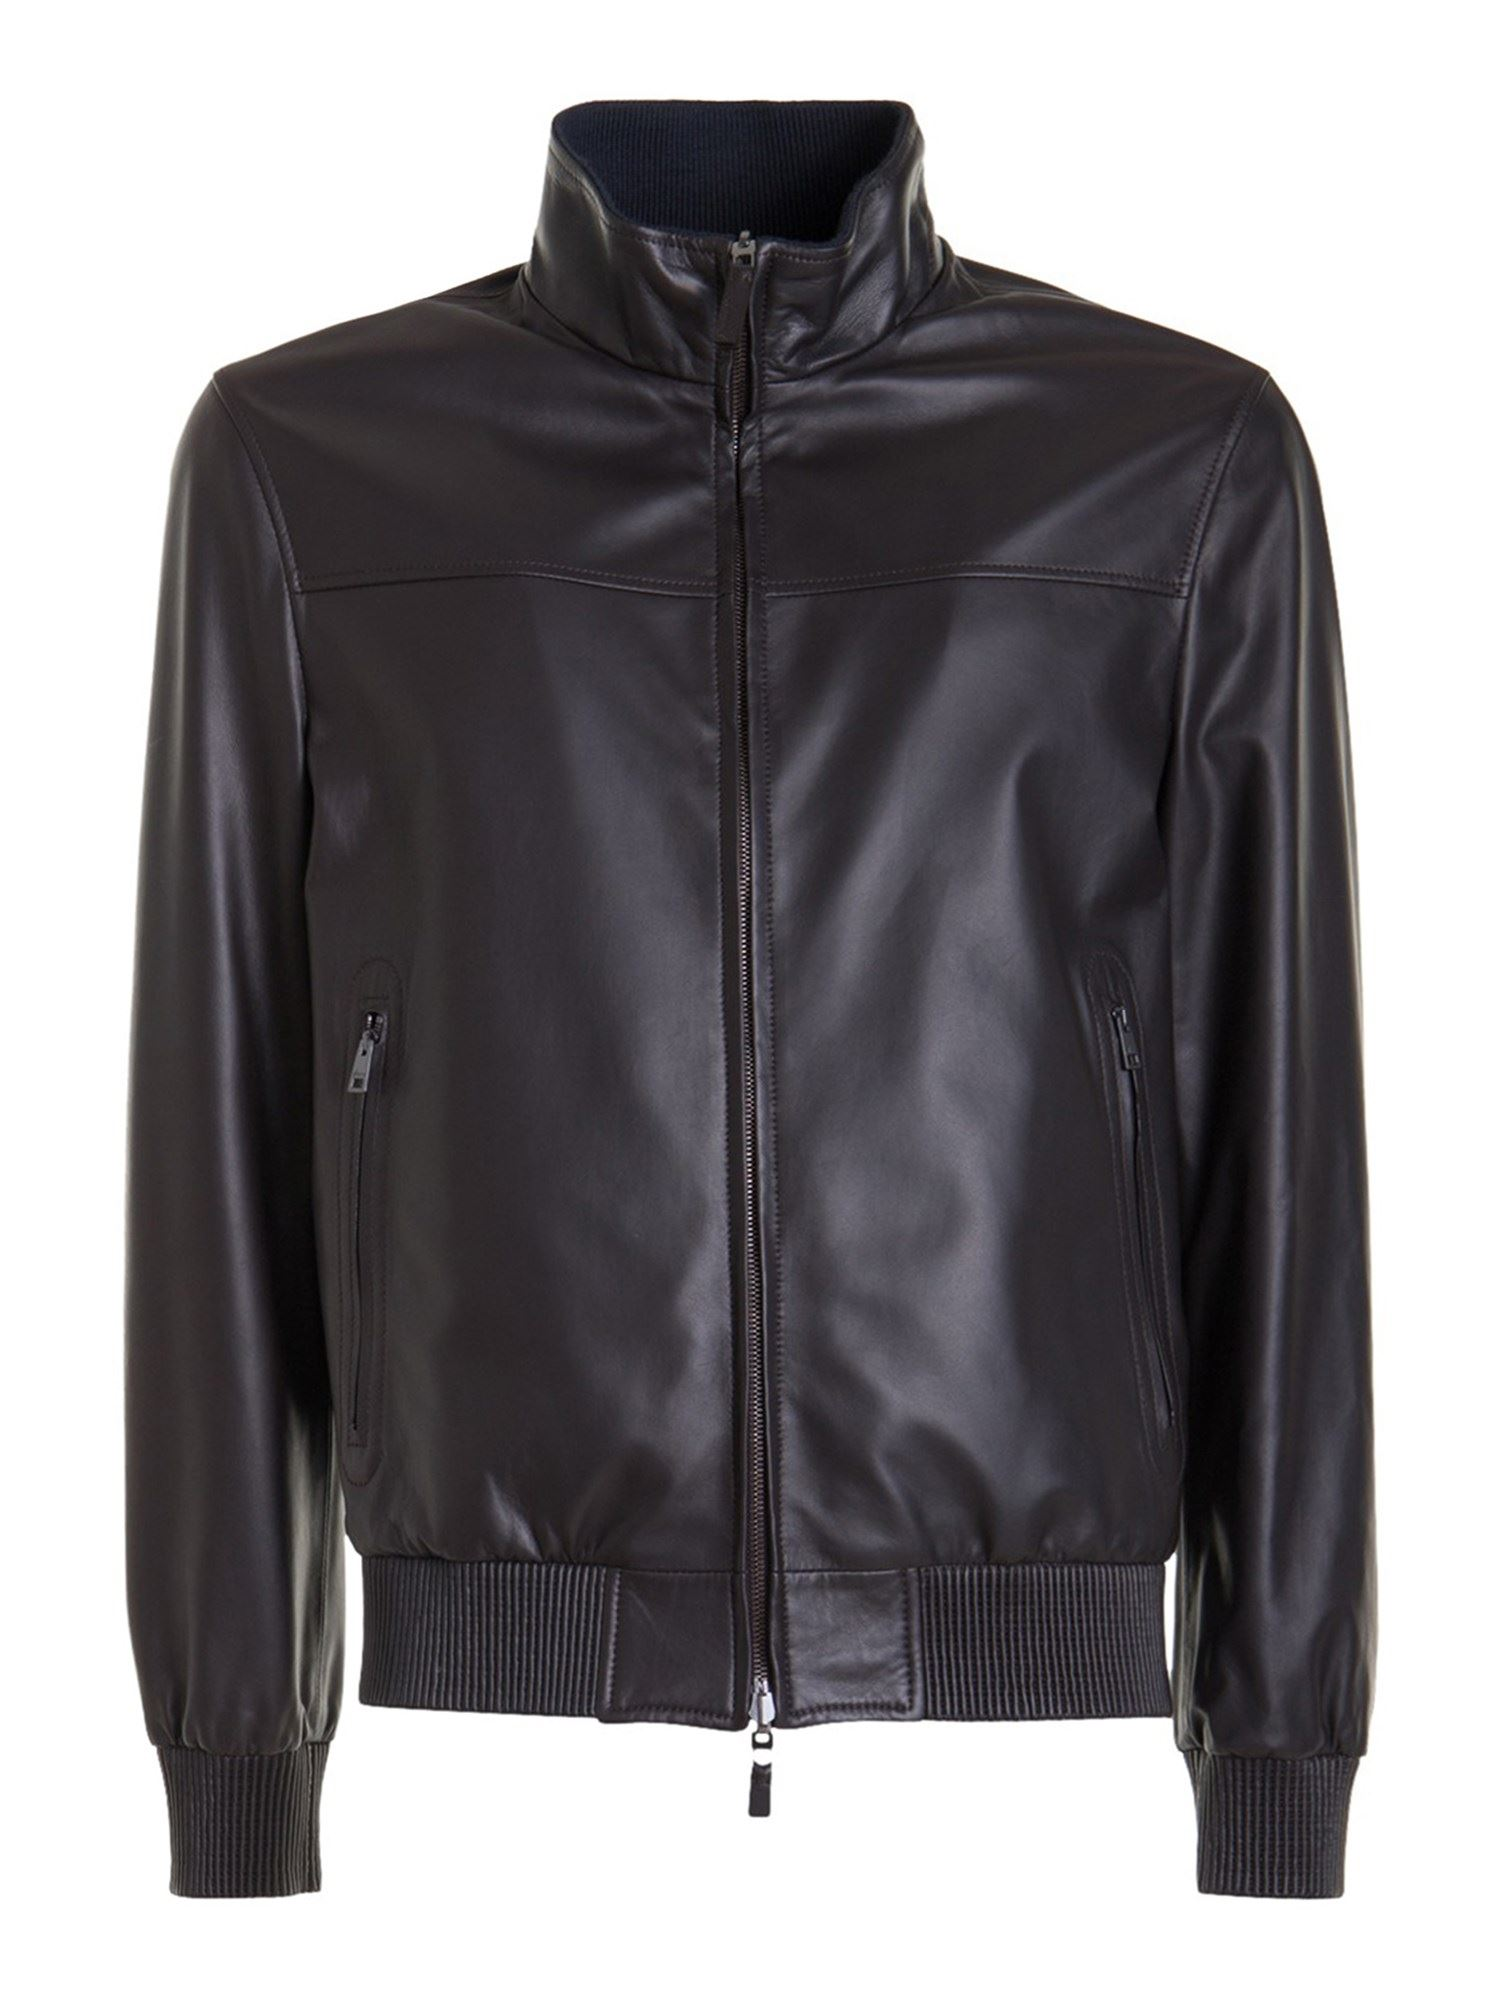 Brioni REVERSIBLE LEATHER JACKET IN BROWN